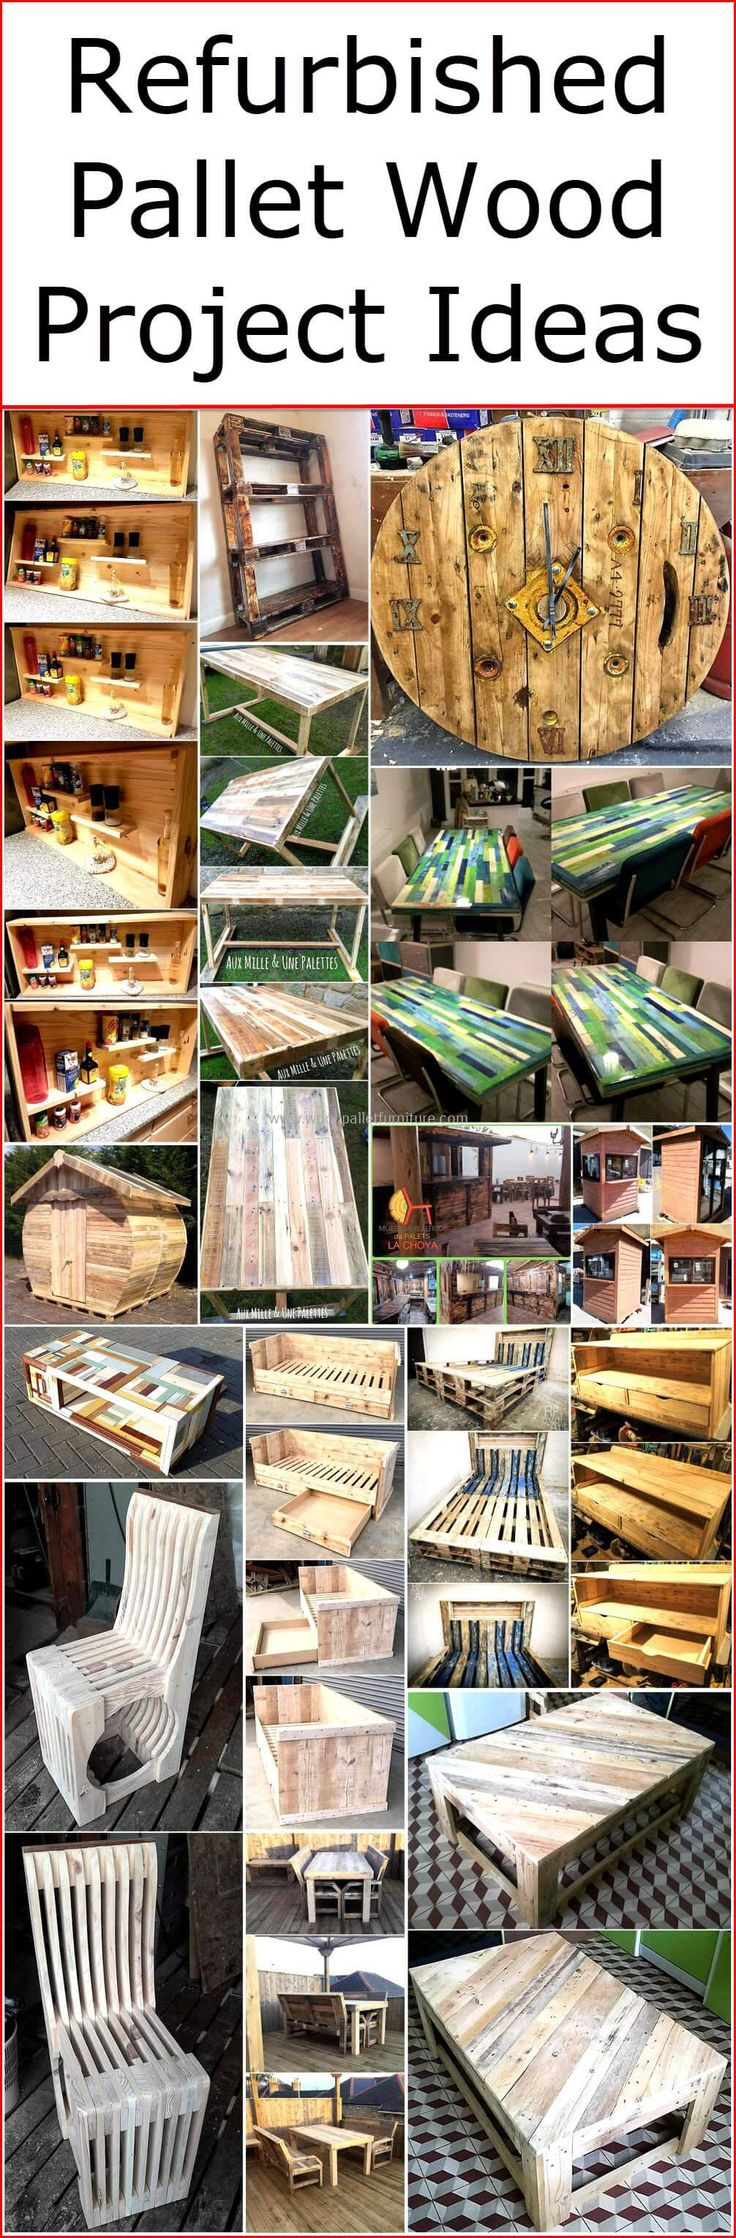 From the last many years, old shipping pallet is remarkably used for the refurbishing of home. So if you have some scrap pieces of wooden pallet planks in your place, then don't make them a part of your garbage, simple turn and transform them into newly crafted wood pallet projects.